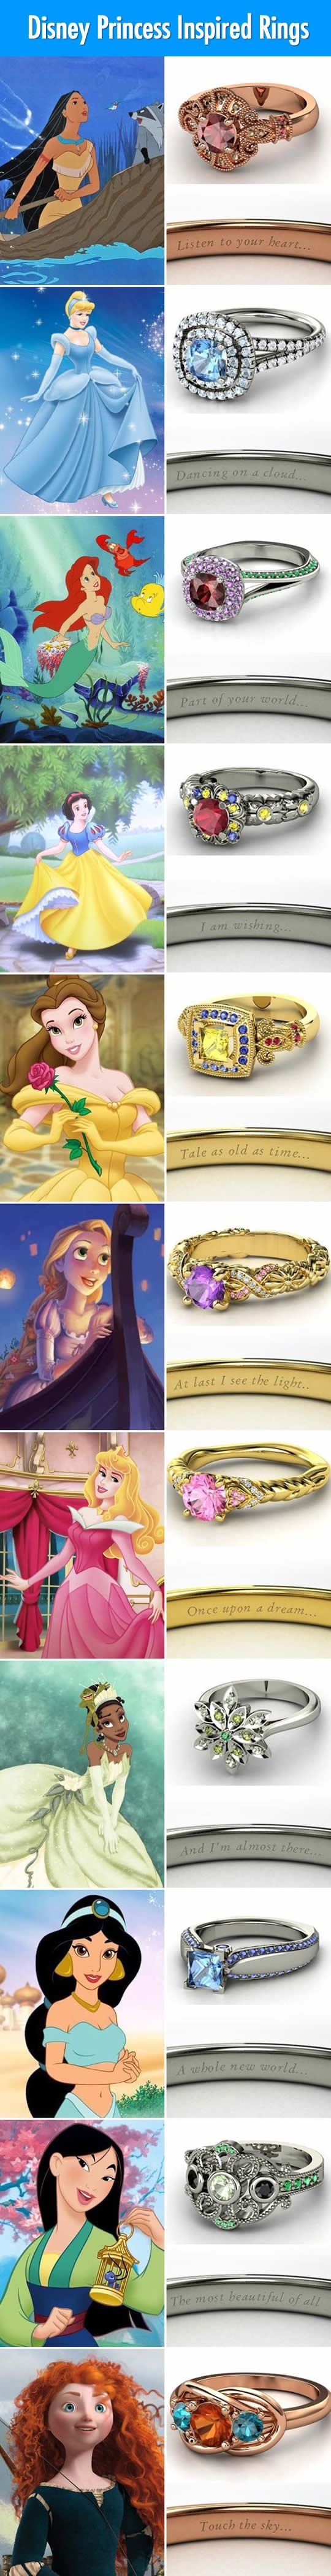 Disney Princess Inspired Rings | Snow White's and Merida's are my favorites.